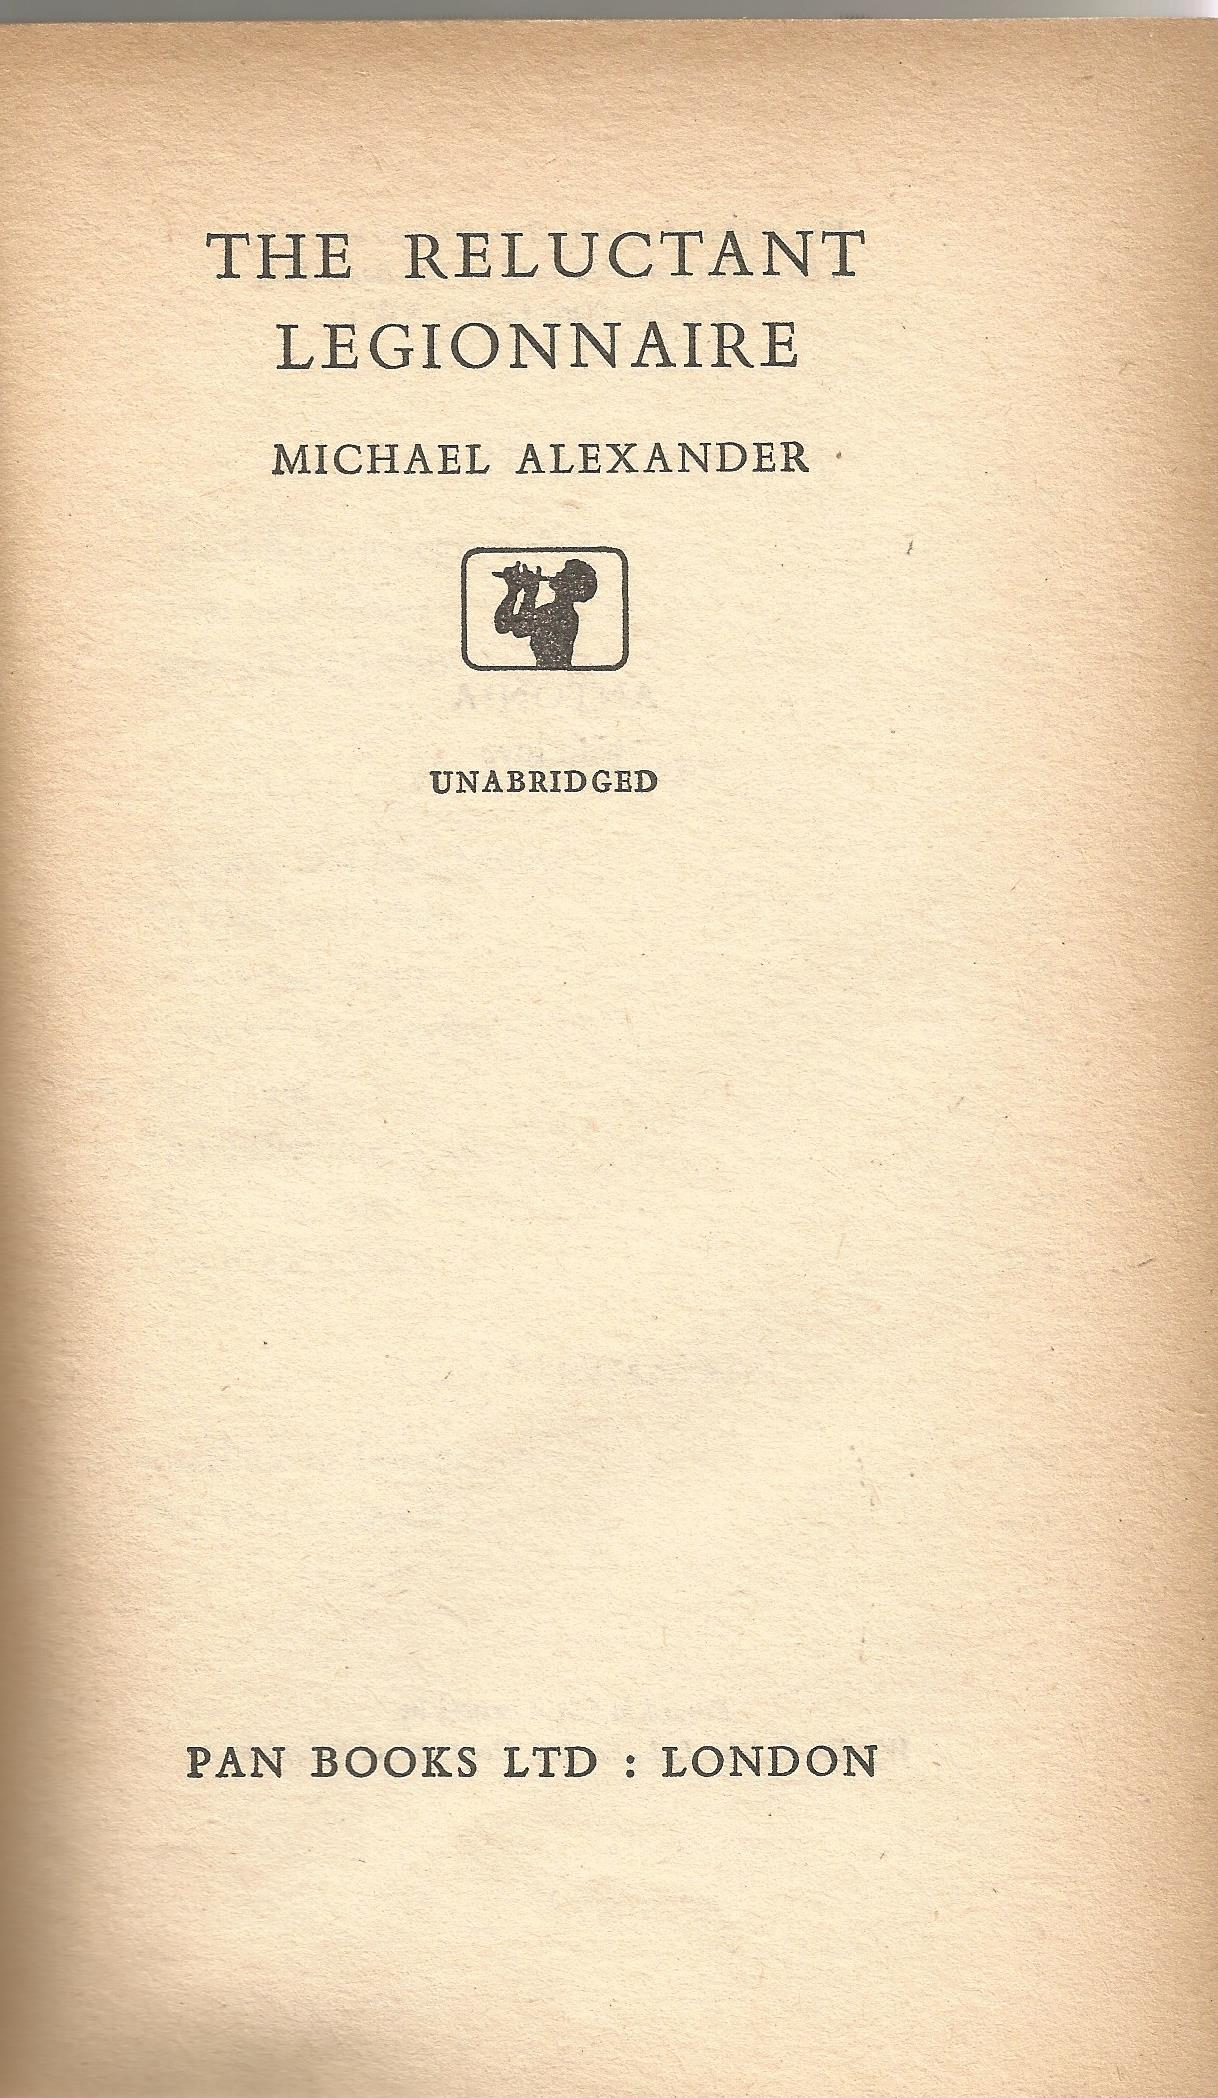 Softback Book The Reluctant Legionnaire by Michael Alexander 1938 published by Pan Books Ltd some - Image 2 of 3